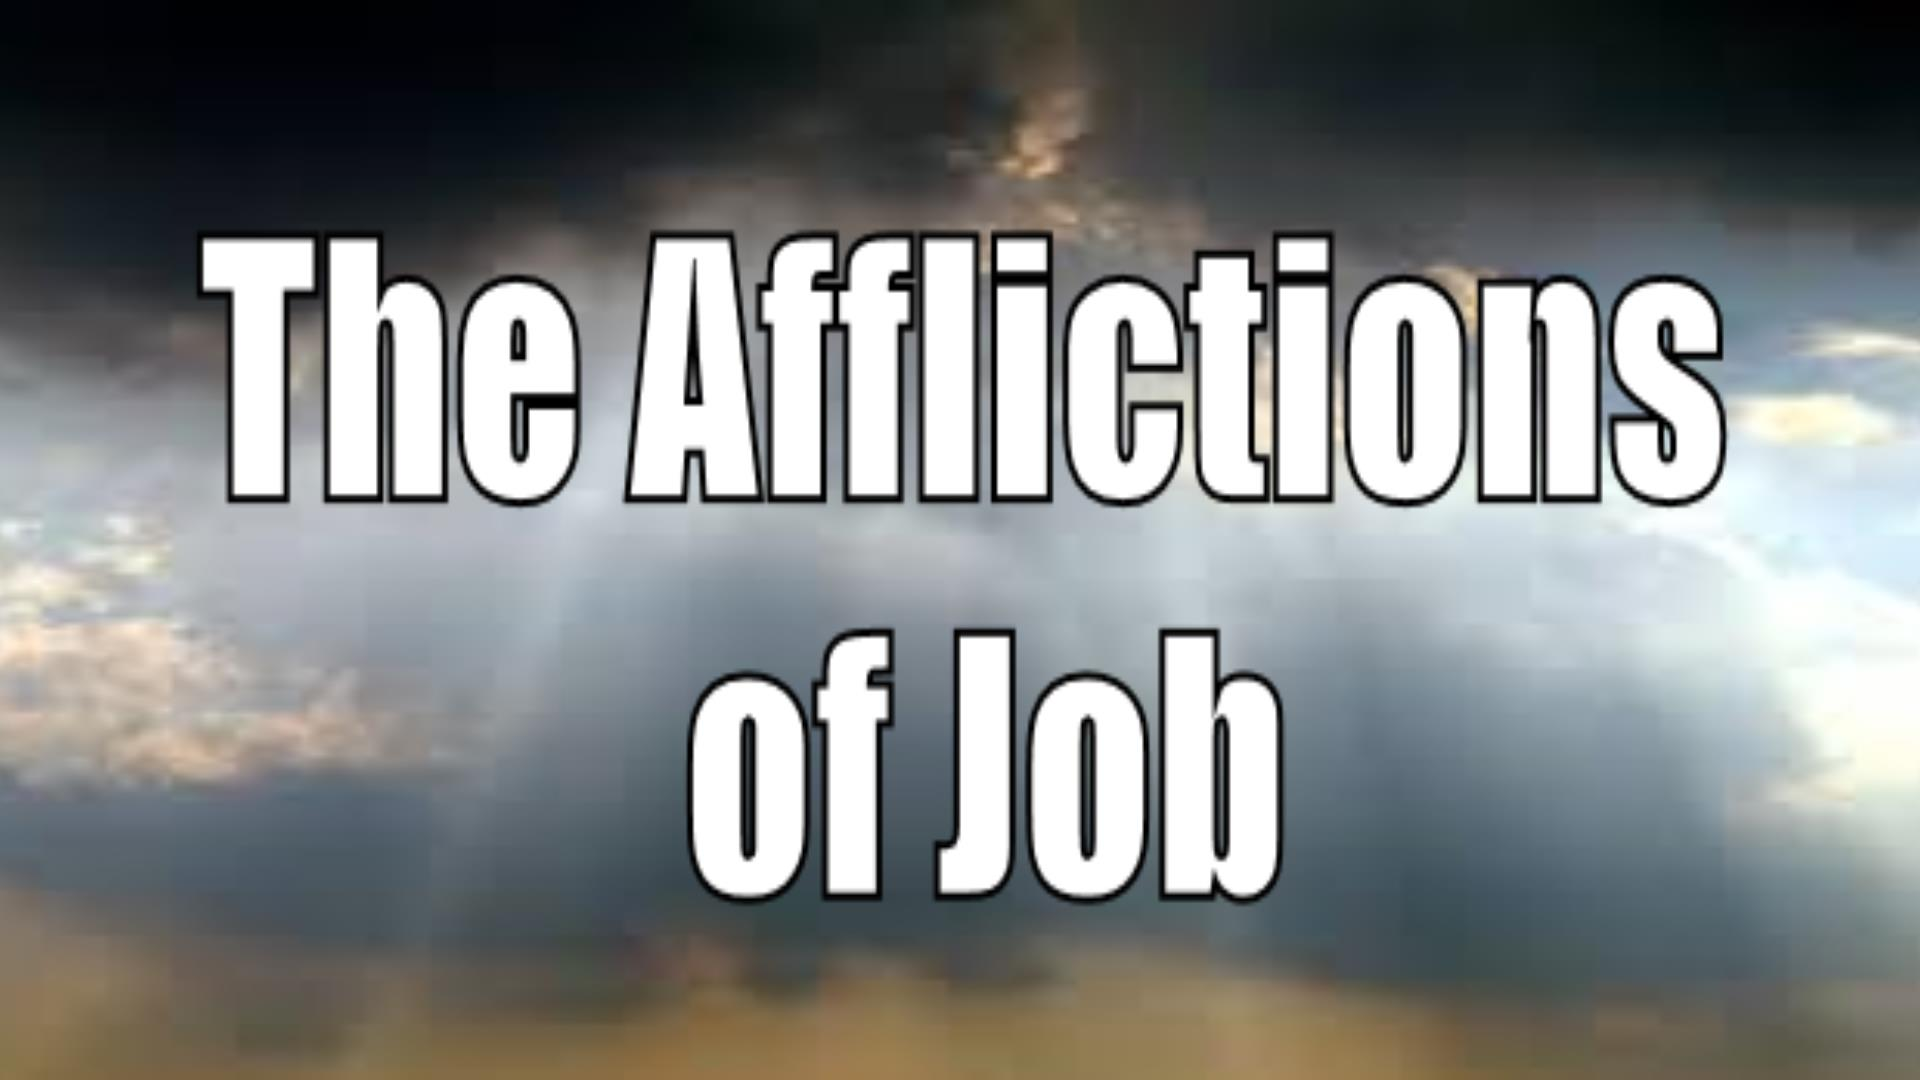 The Afflictions of Job